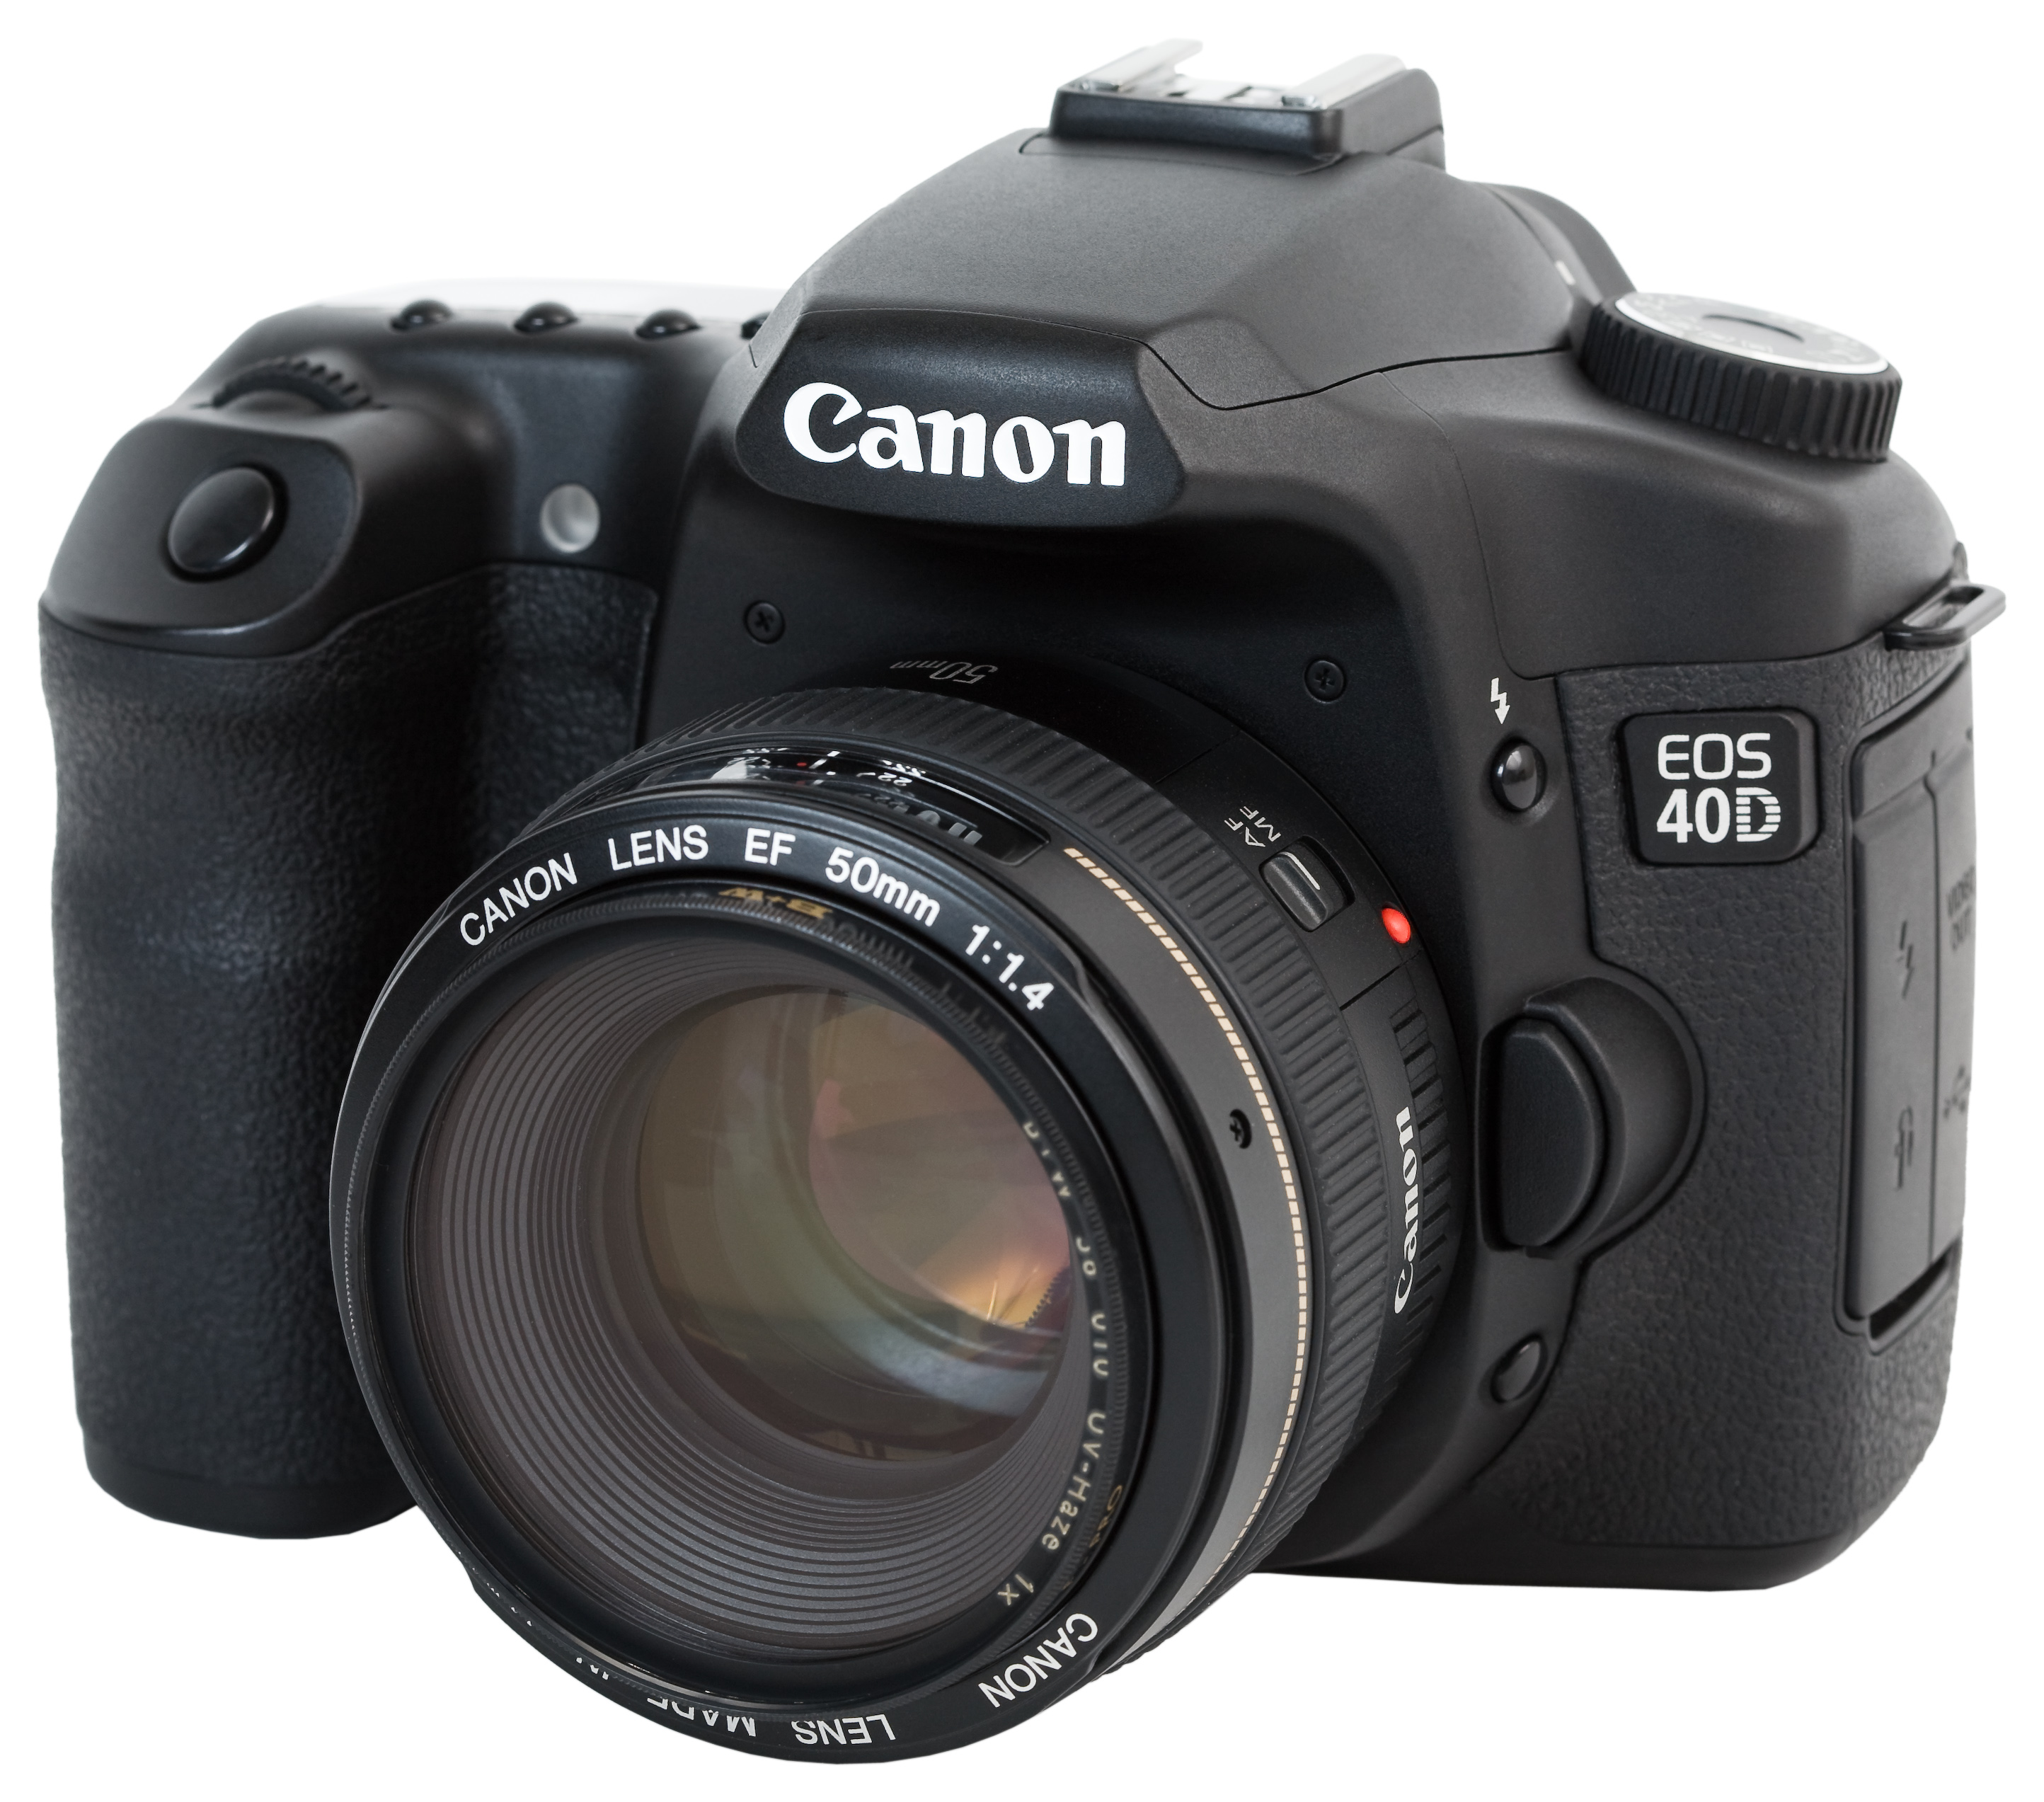 File:Canon EOS 40D with EF 50mm f1.4 USM.jpg - Wikimedia Commons Canon